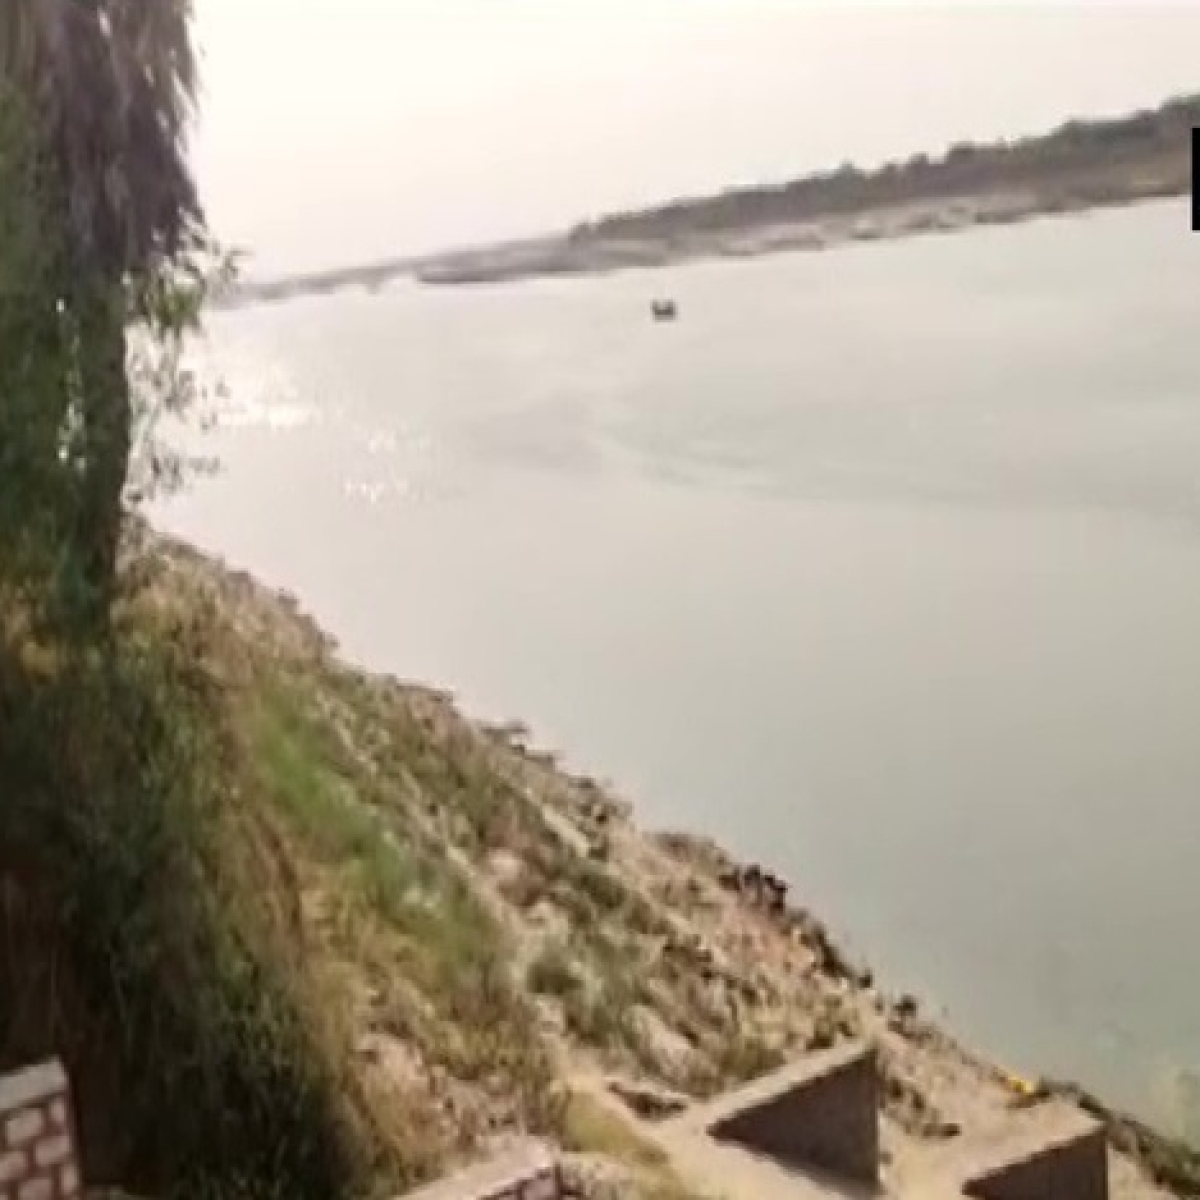 After Bihar, 100 bodies found floating in Ganga river in UP's Ghazipur; District Magistrate orders inquiry